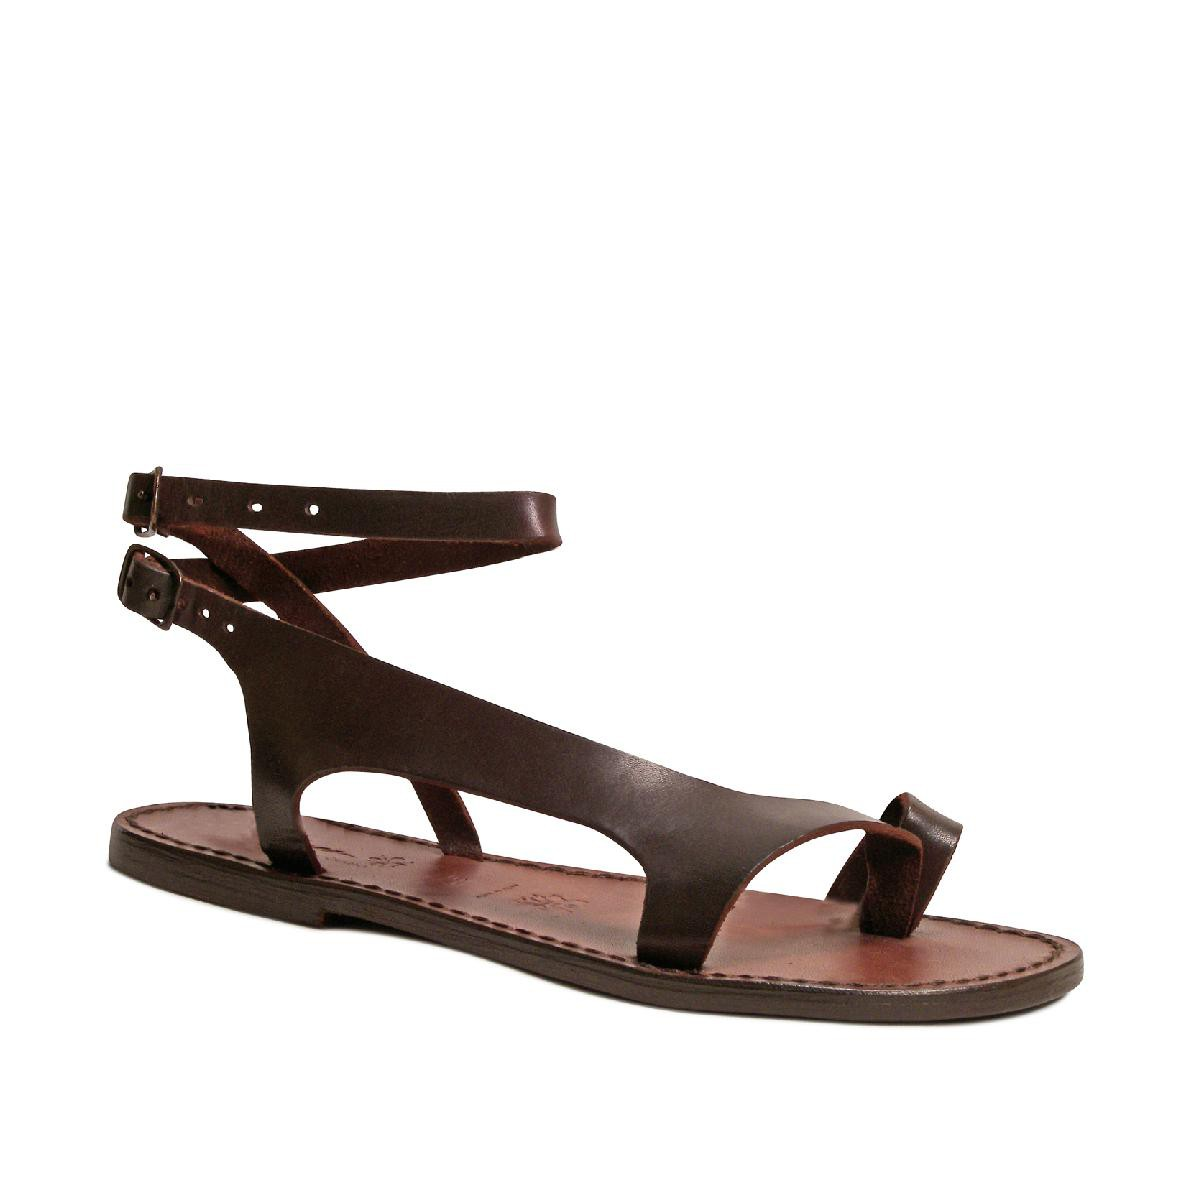 1b13227ecbd Brown leather thong sandals for women Handmade in Italy. Loading zoom